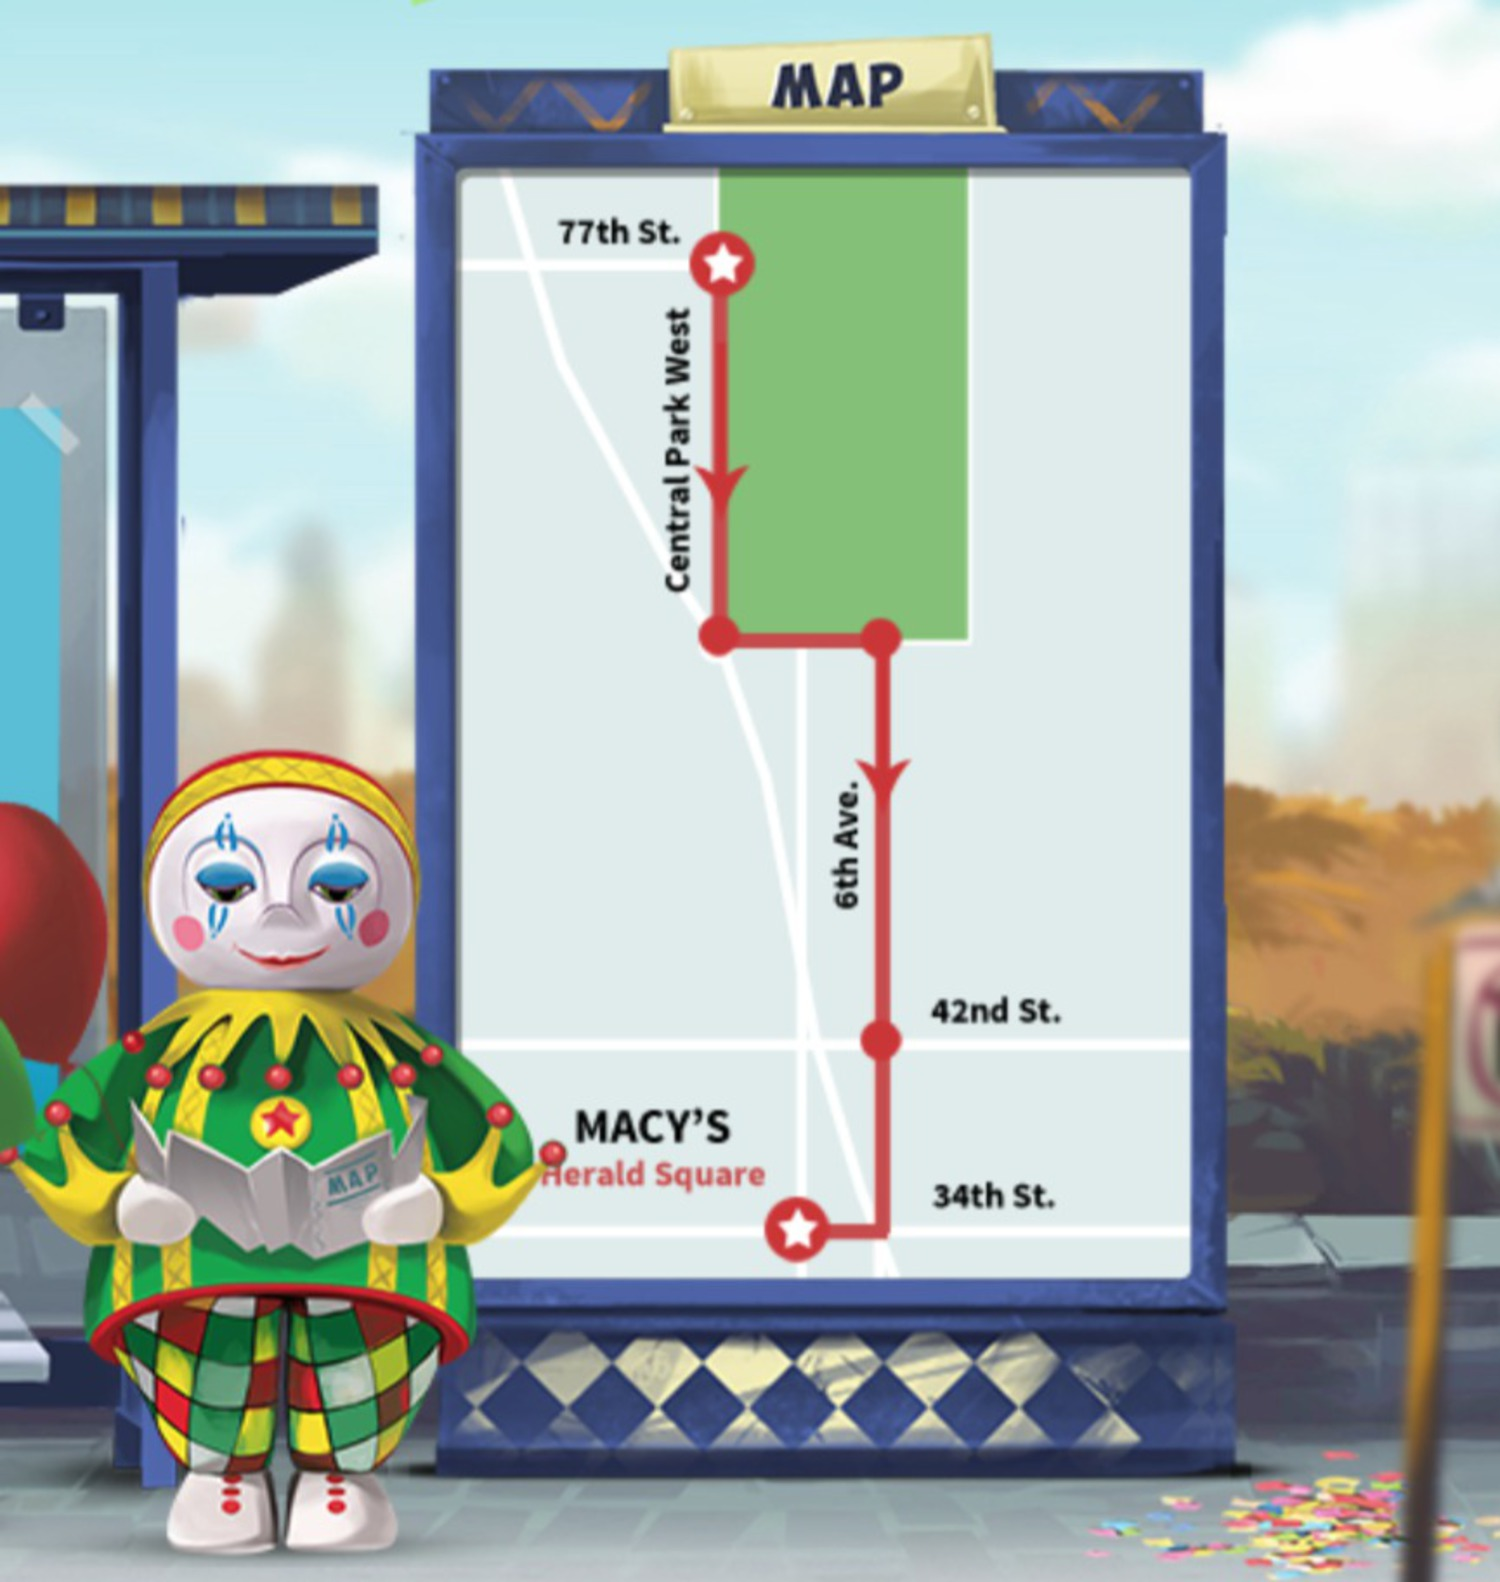 2014 Macy's Thanksgiving Day Parade Route